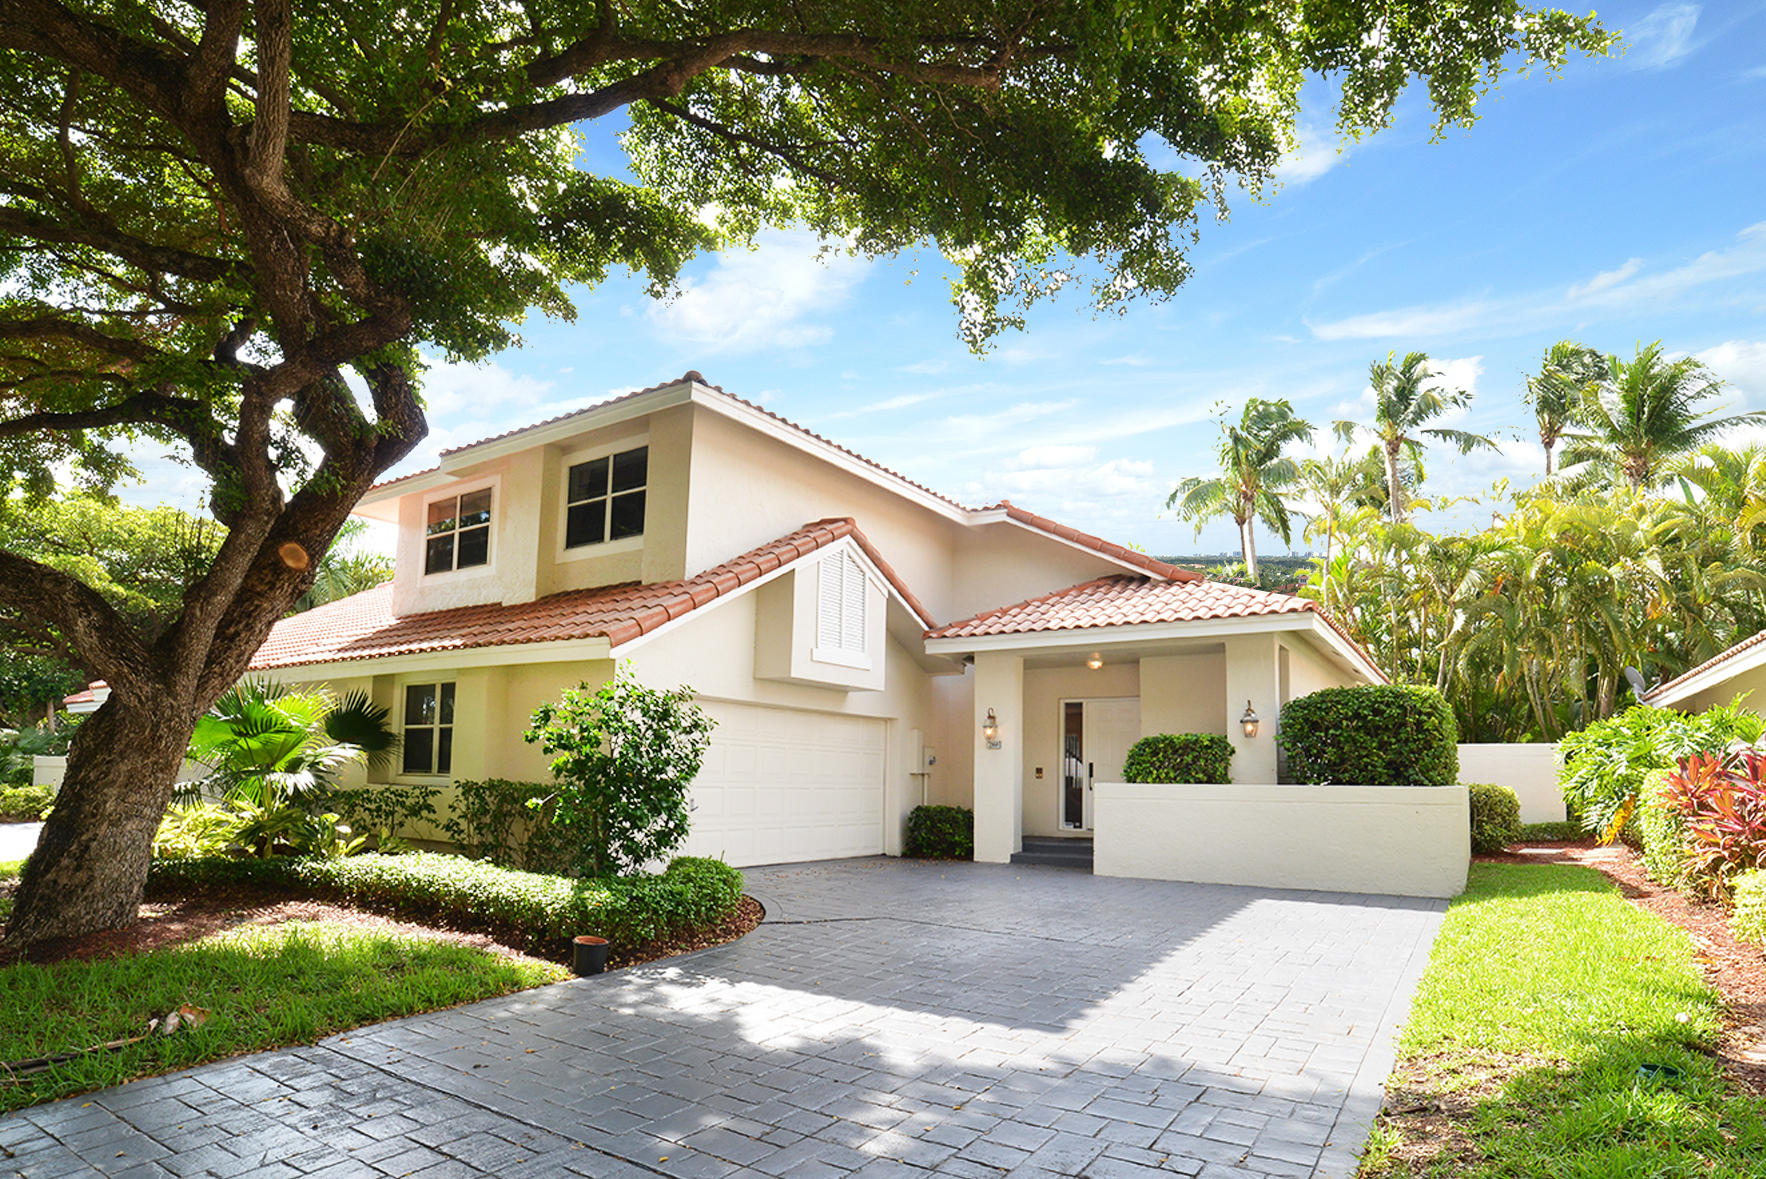 Home for sale in Broken Sound Boca Raton Florida